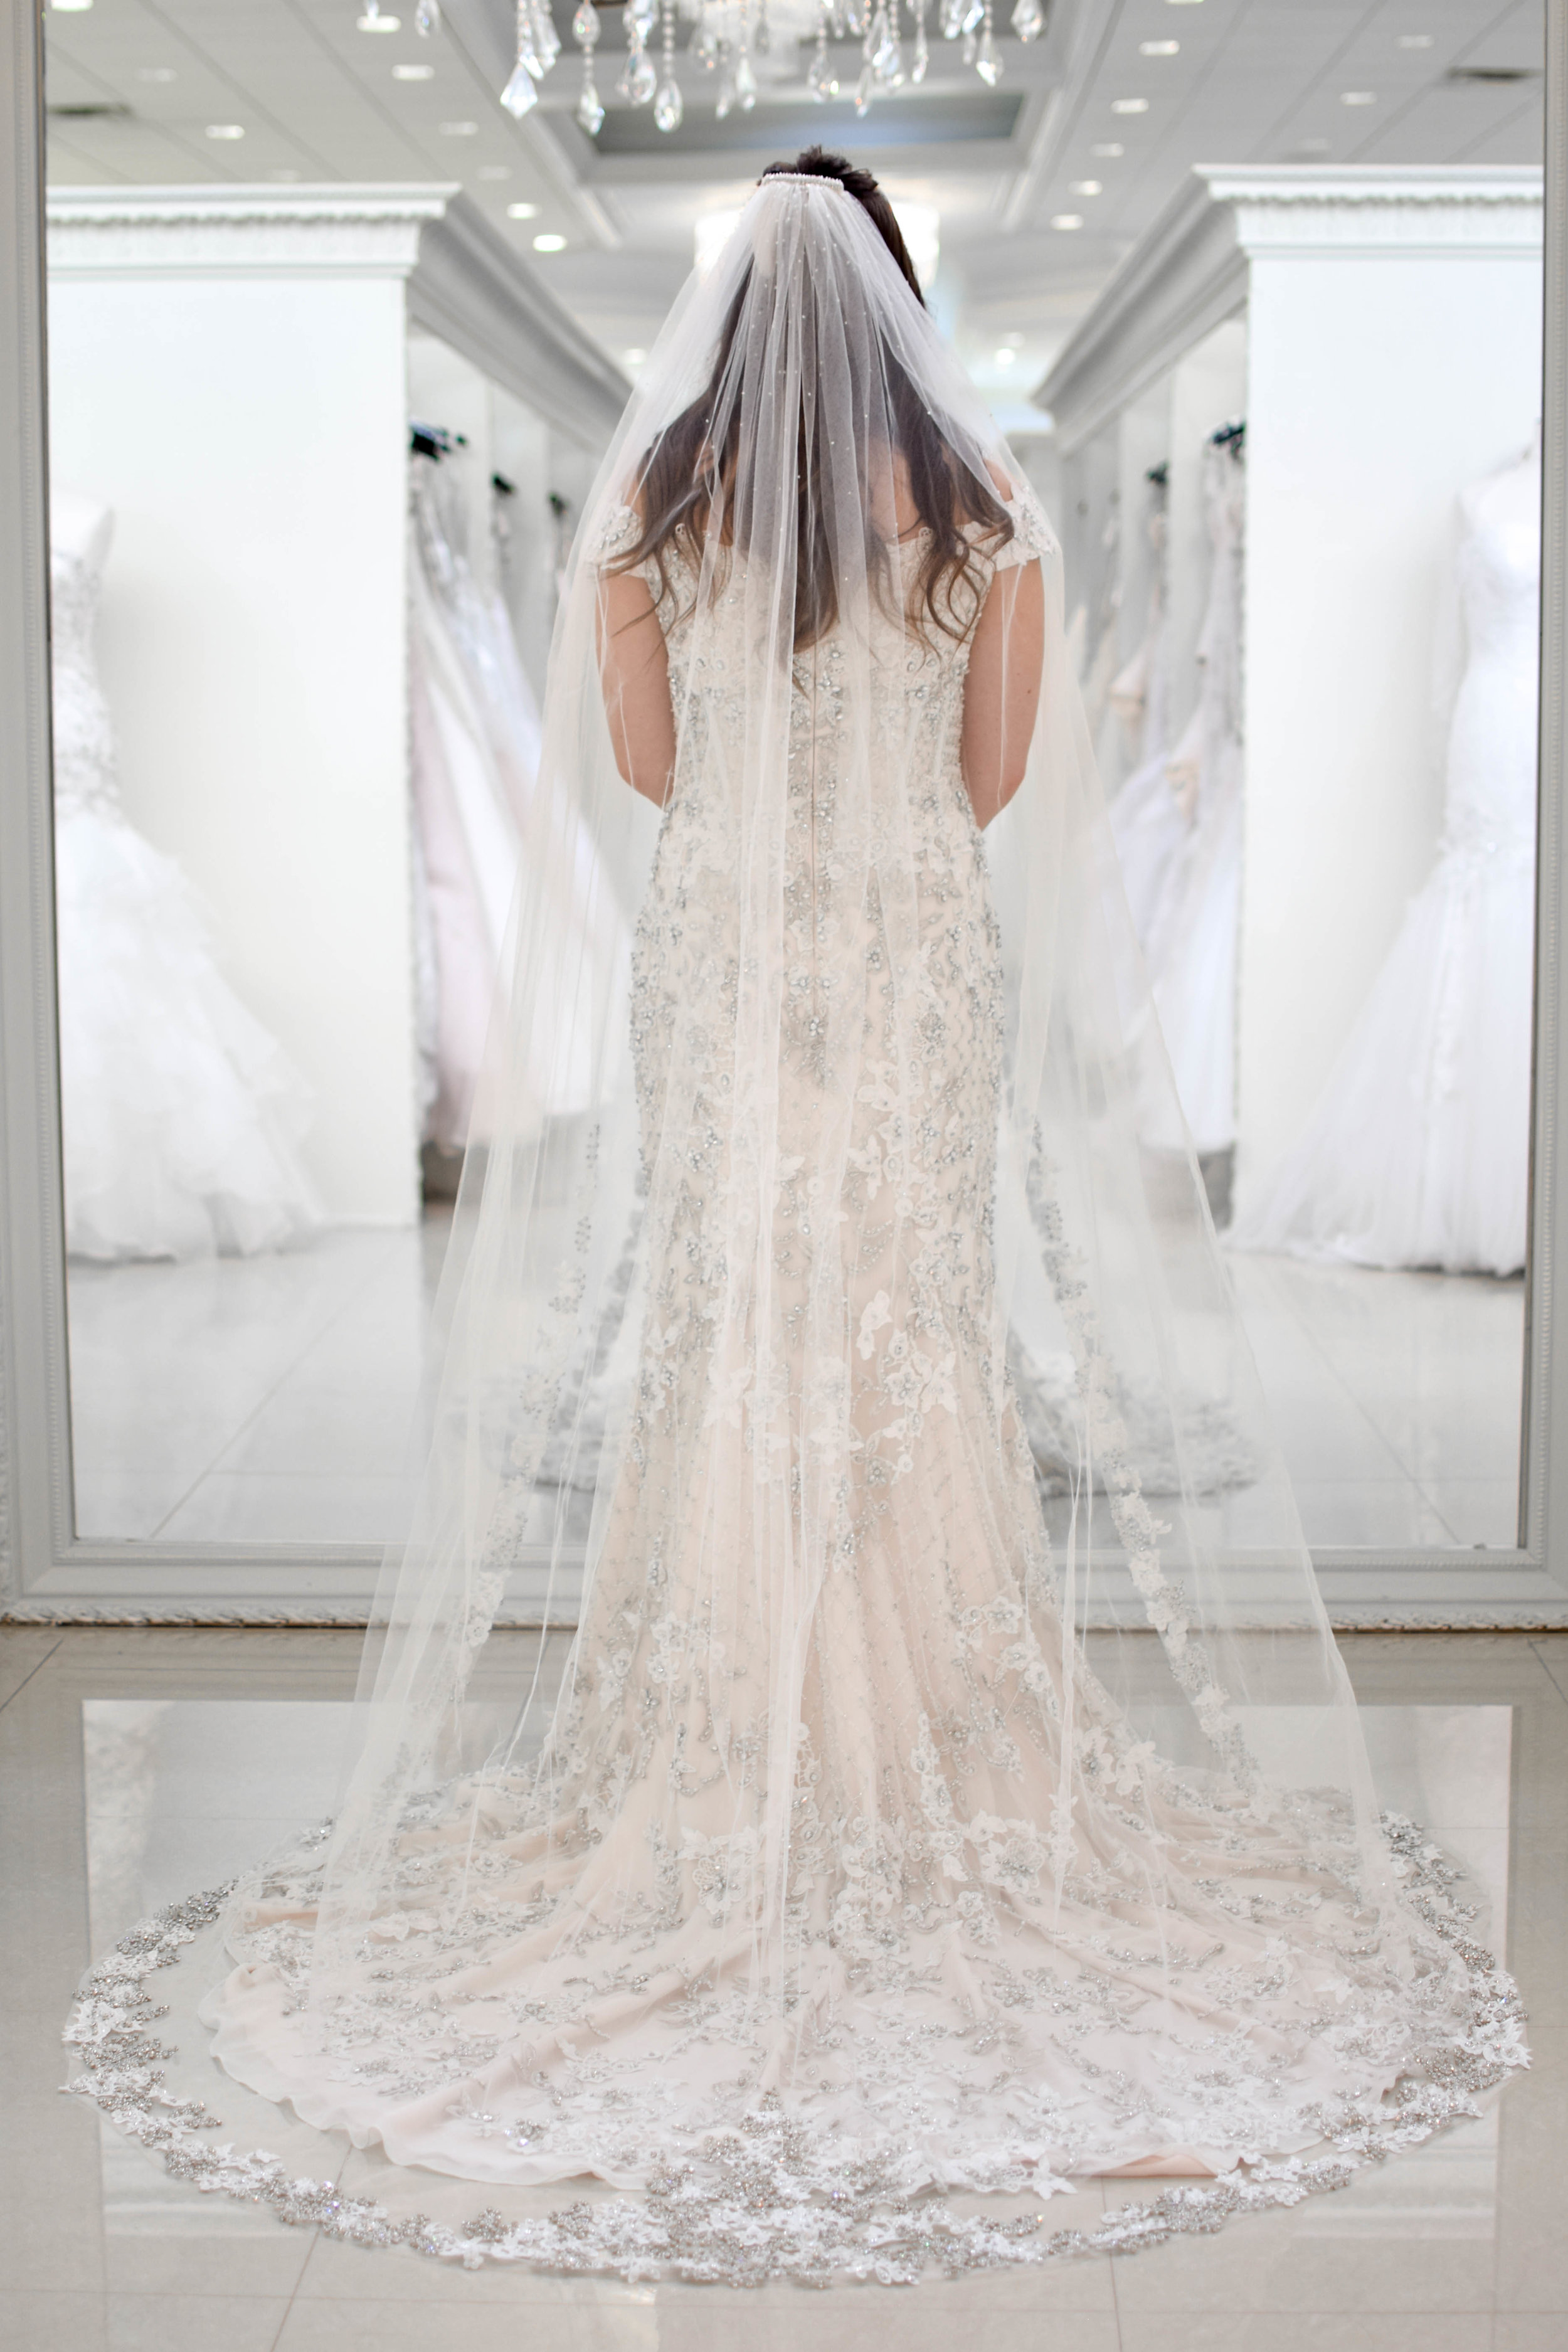 Three Tips for Finding the Perfect Wedding Dress | Pine Barren Beauty | wedding inspiration, wedding dress idea, beaded wedding dress, glam wedding dress, Stephen Yearick wedding dress, castle couture